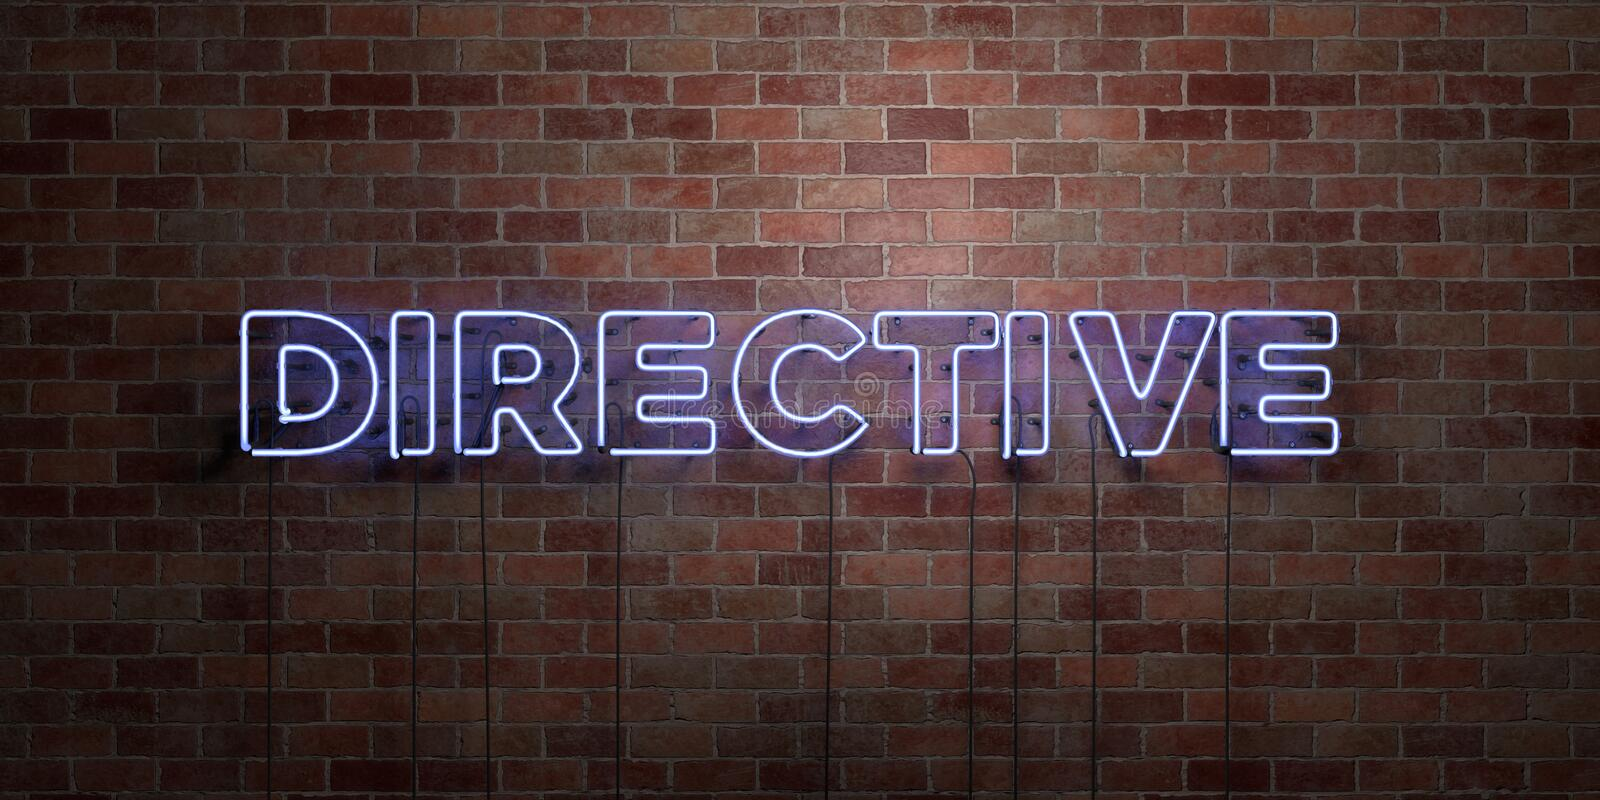 DIRECTIVE - fluorescent Neon tube Sign on brickwork - Front view - 3D rendered royalty free stock picture. Can be used for online banner ads and direct mailers royalty free illustration